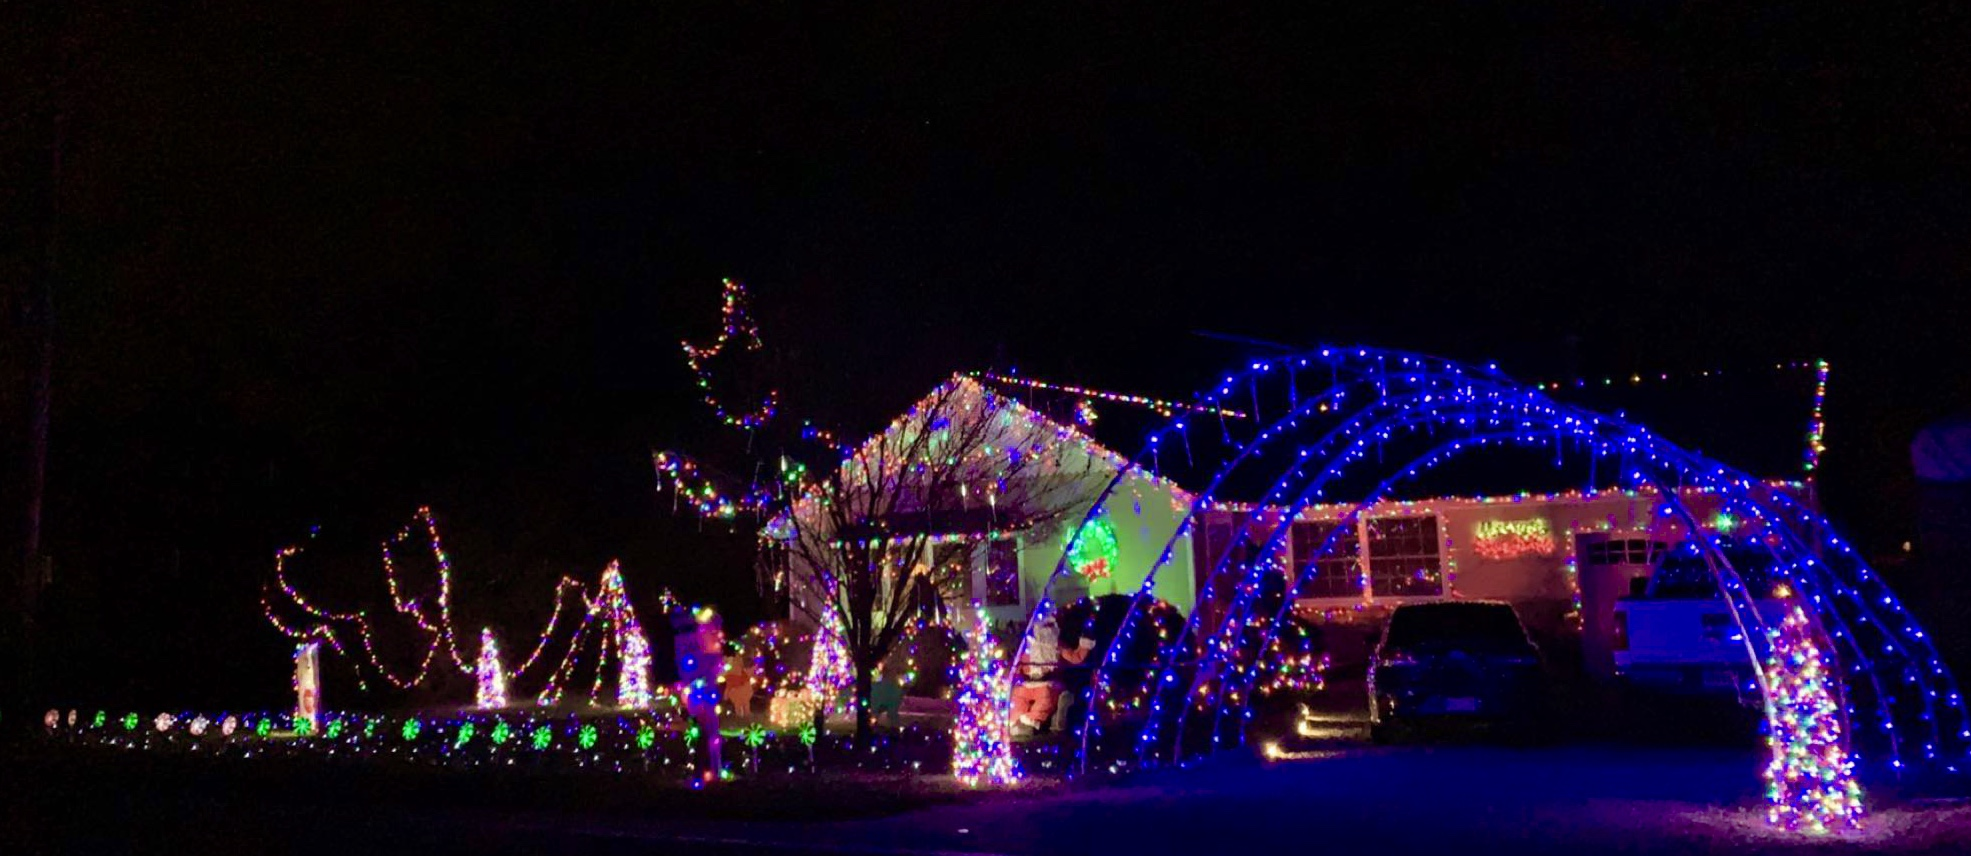 Skylands Stadium Christmas Light Show.Where To See The Best Christmas Light Displays In Nj 2018